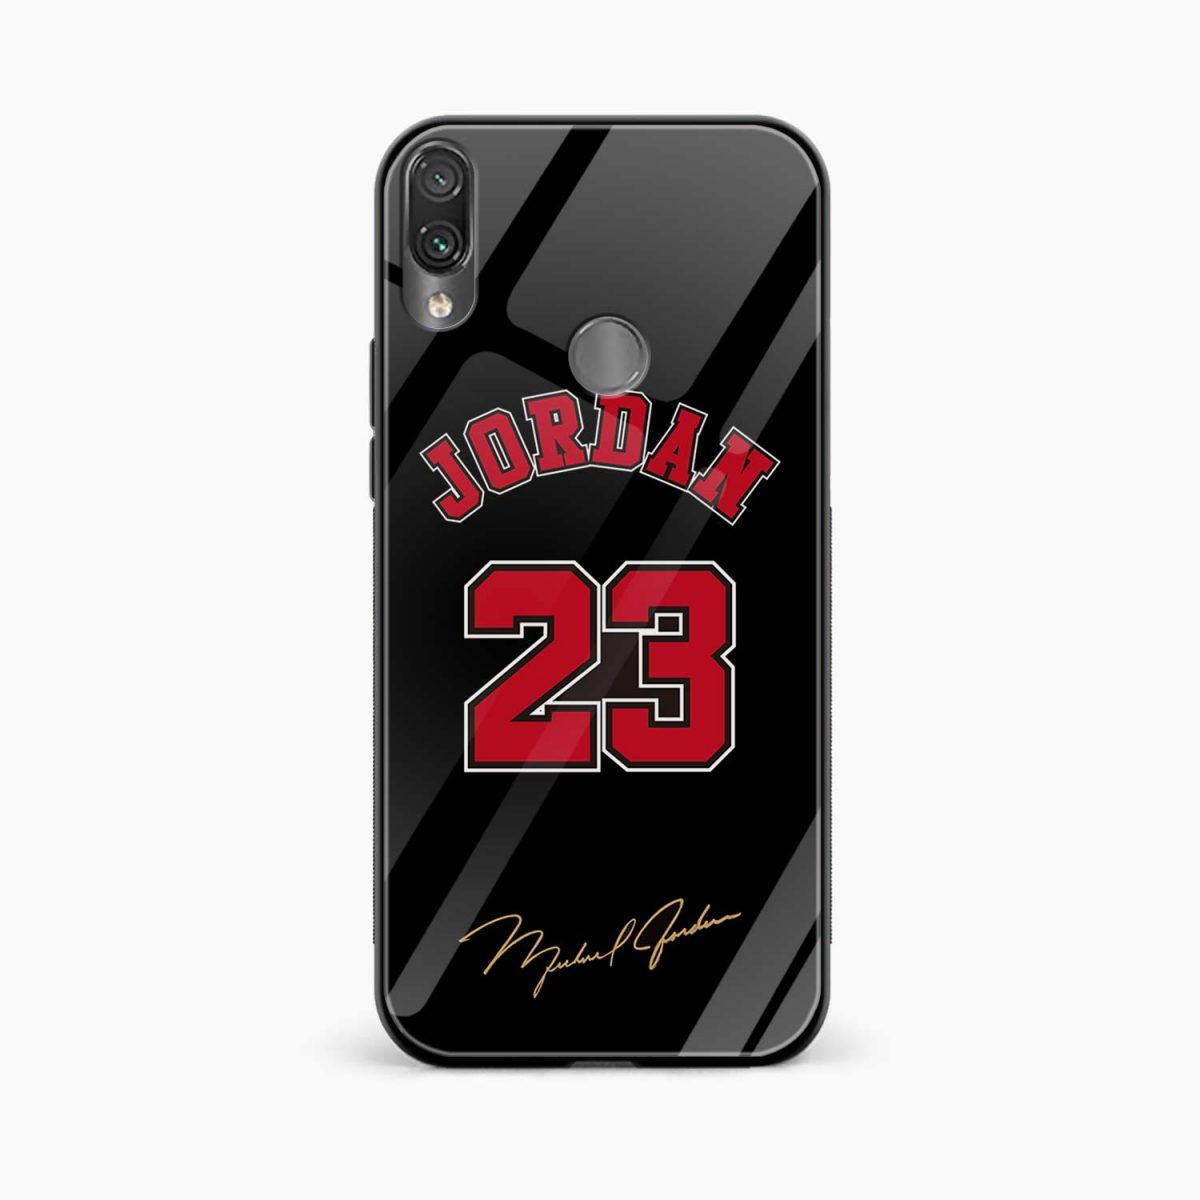 jordan 23 front view redmi note 7 back cover